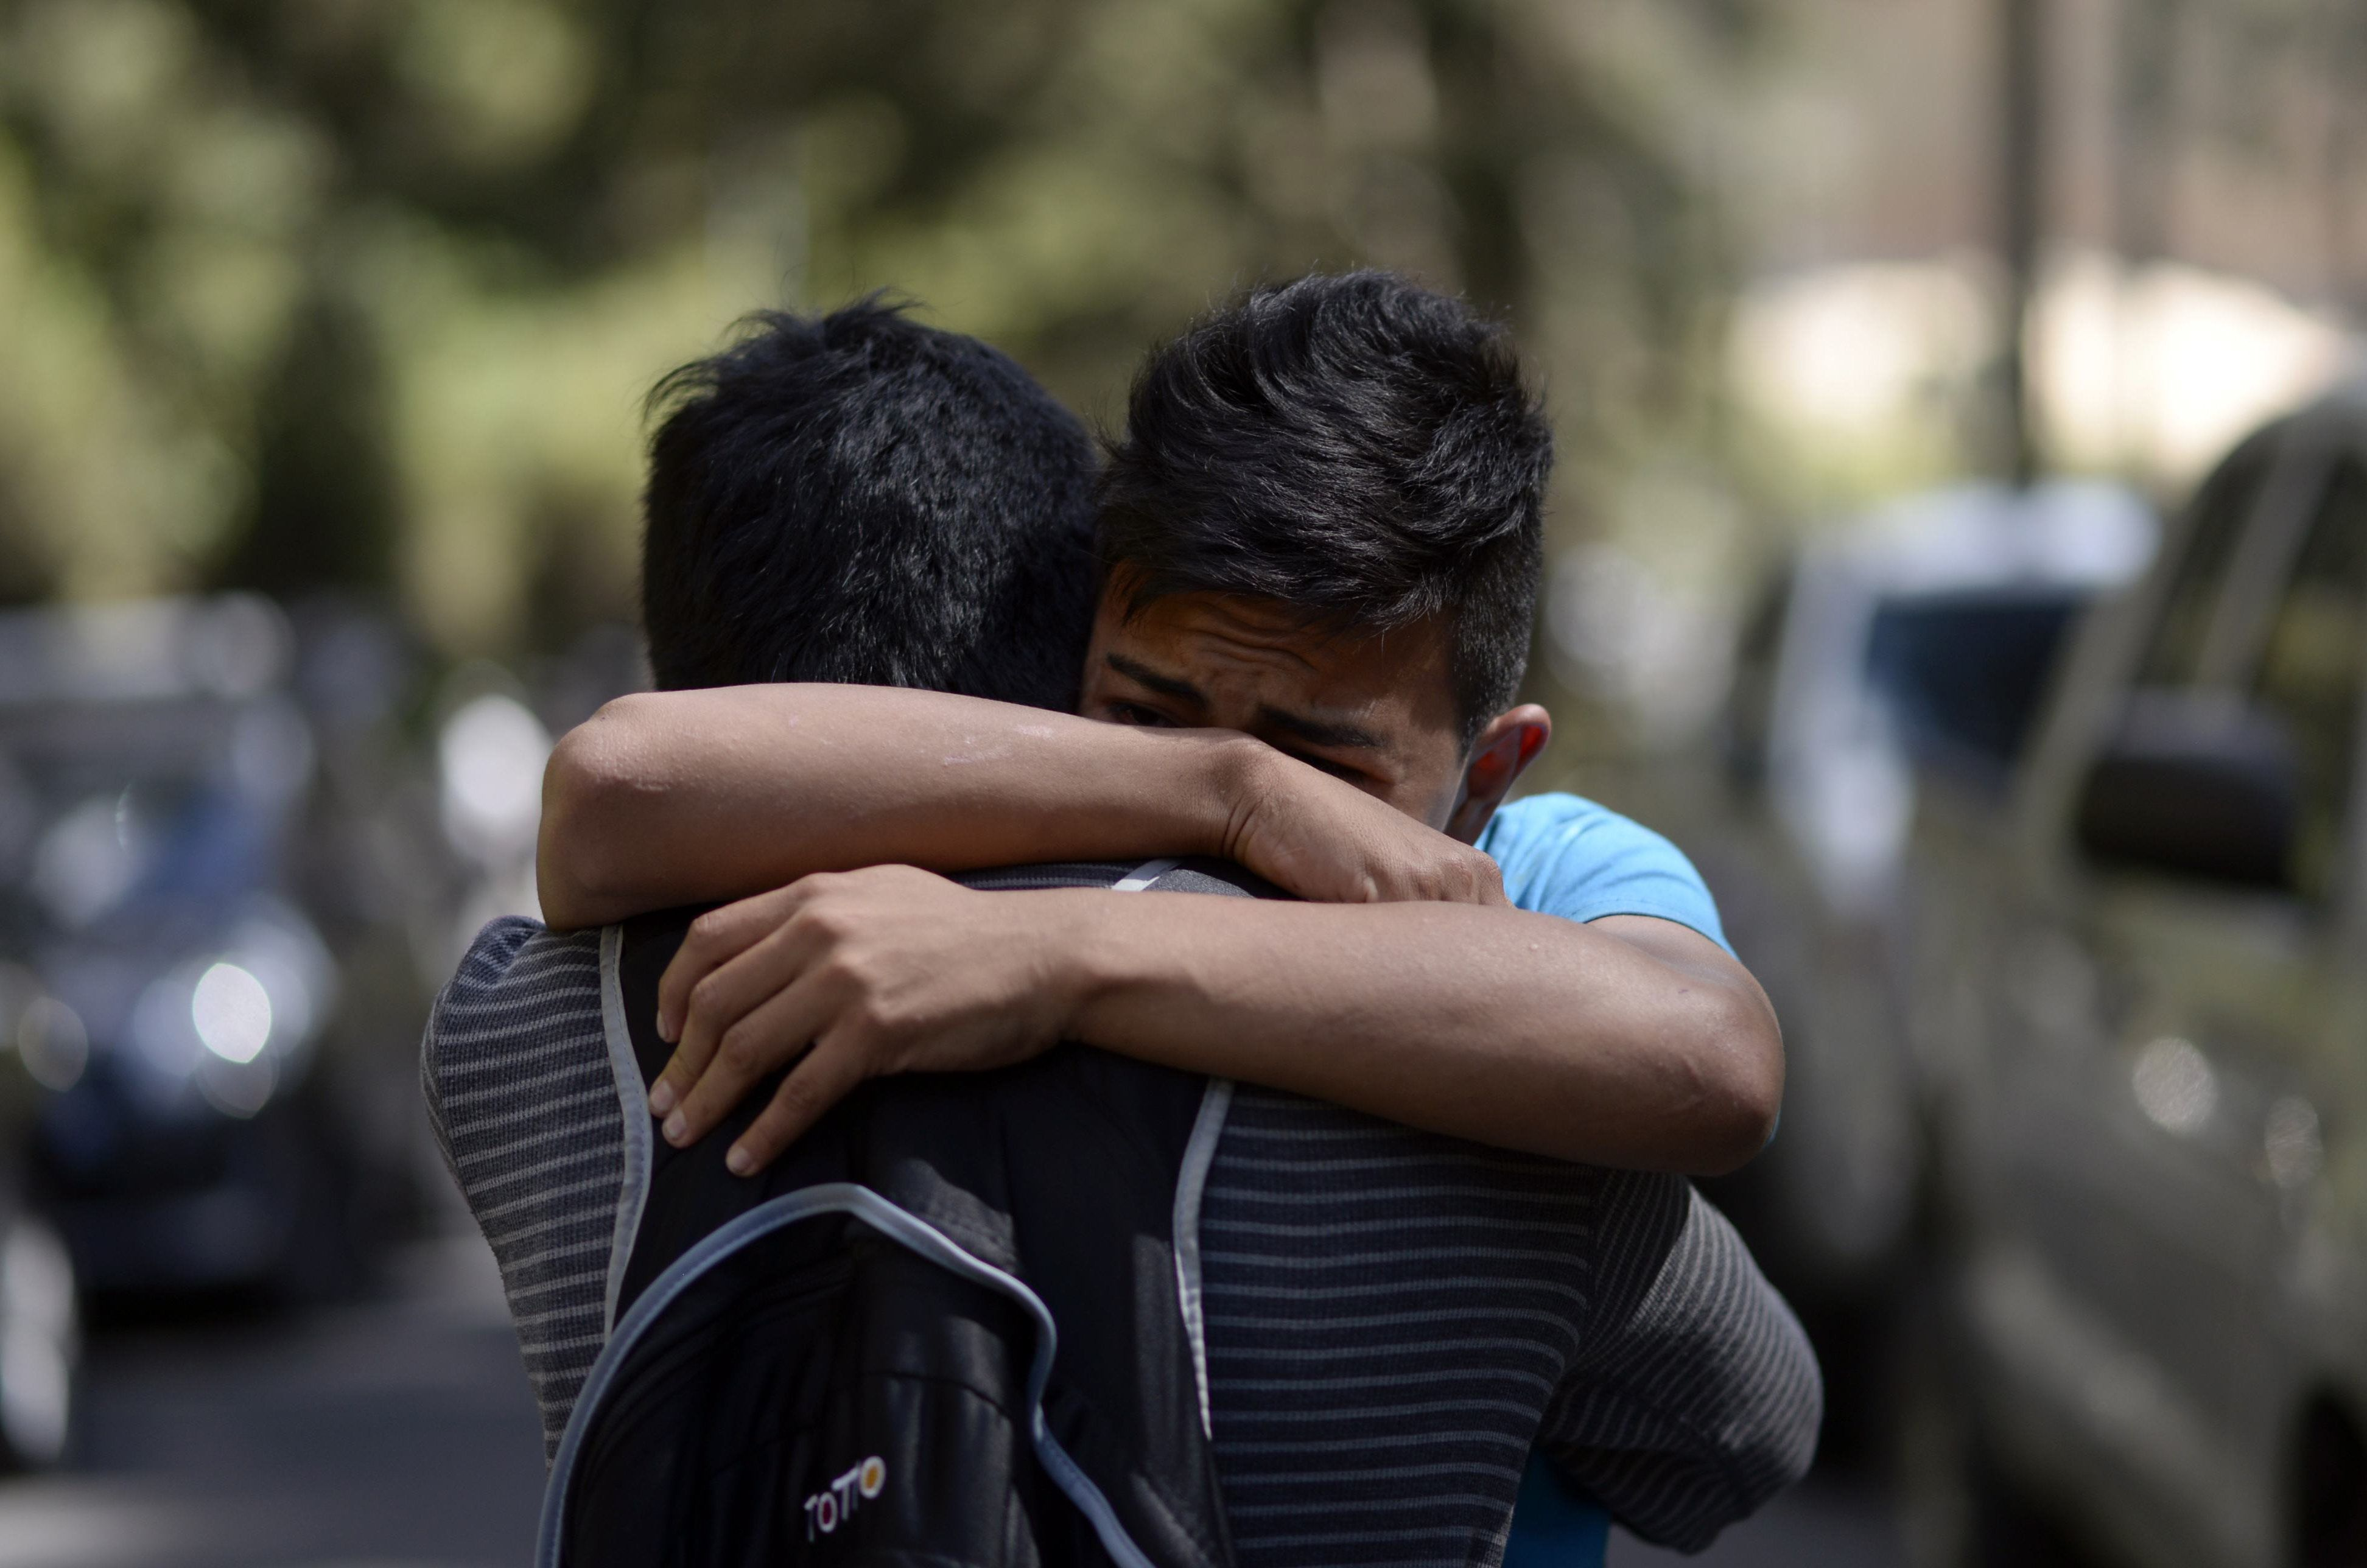 A survivor of the fire (R) embraces a relative outside the children's shelter Virgen de la Asuncion after a fire at the facility killed at least 19 people, in San Jose Pinula, about 30 km east of Guatemala City, on March 8, 2017. At least 19 people died in a fire at a children's shelter in Guatemala, a spokesman for the local fire service said. It was not immediately known how many of the bodies were those of children. The center, supervised by state social welfare authorities, hosts minors who are victims of family mistreatment. The facility has been the target of multiple complaints alleging abuse, and several children have run away.  / AFP PHOTO / JOHAN ORDONEZ        (Photo credit should read JOHAN ORDONEZ/AFP/Getty Images)